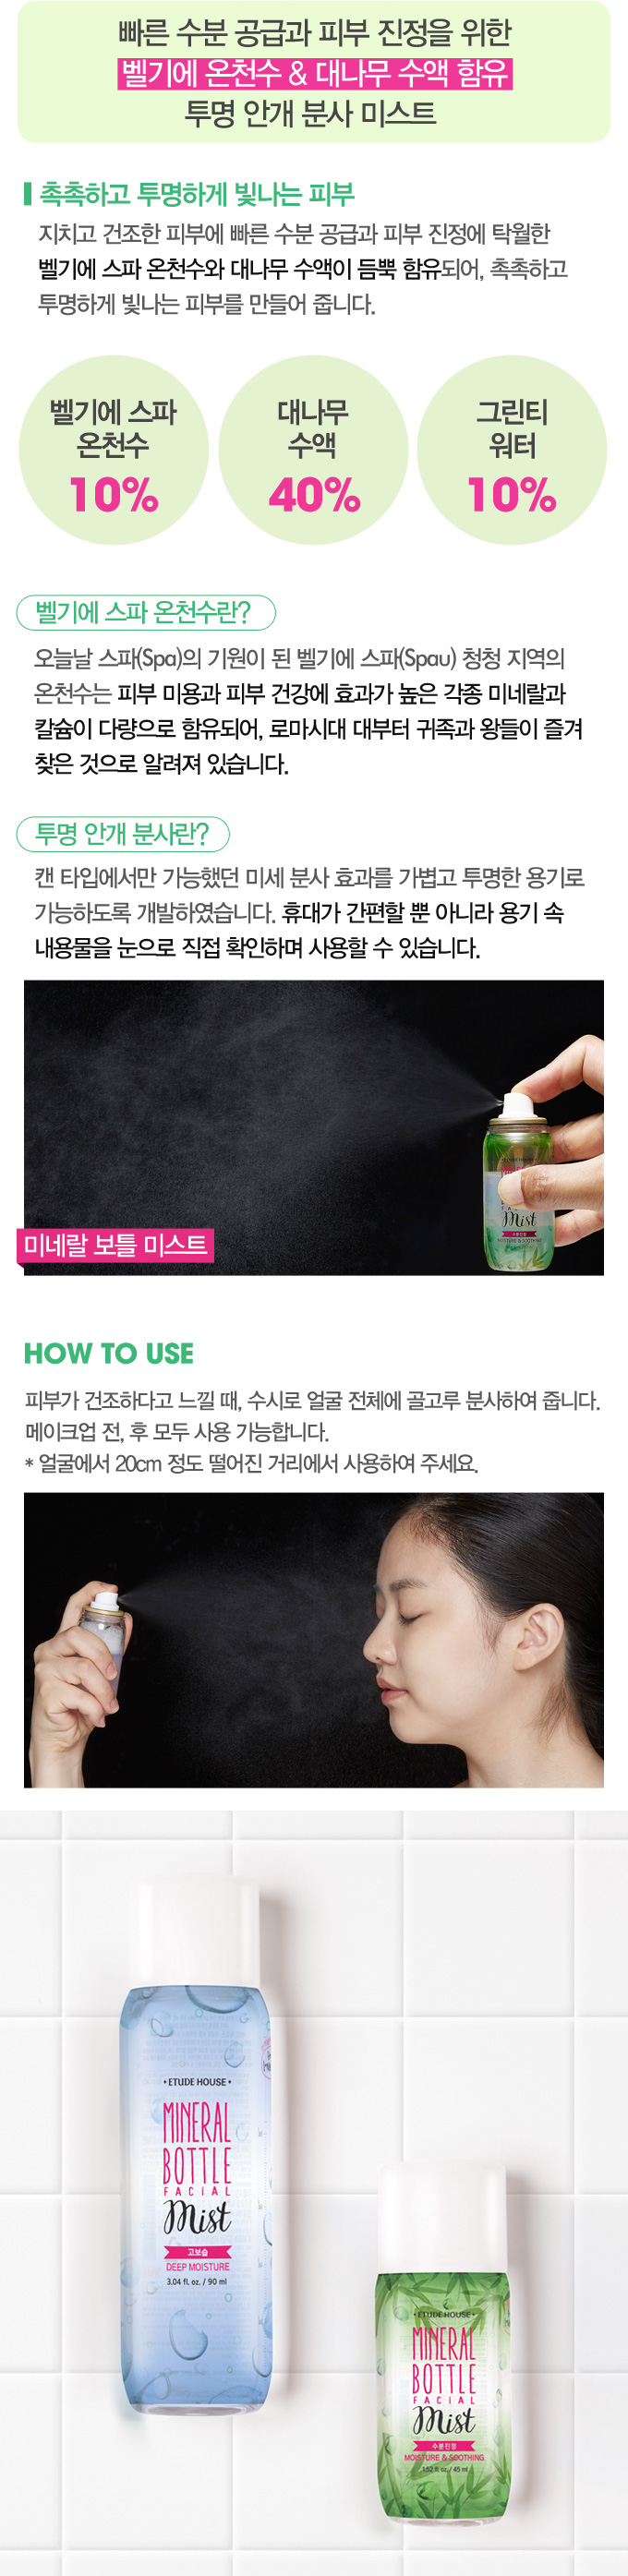 ETUDE HOUSE Mineral Bottle Facial Mist - Moisture & Soothing2